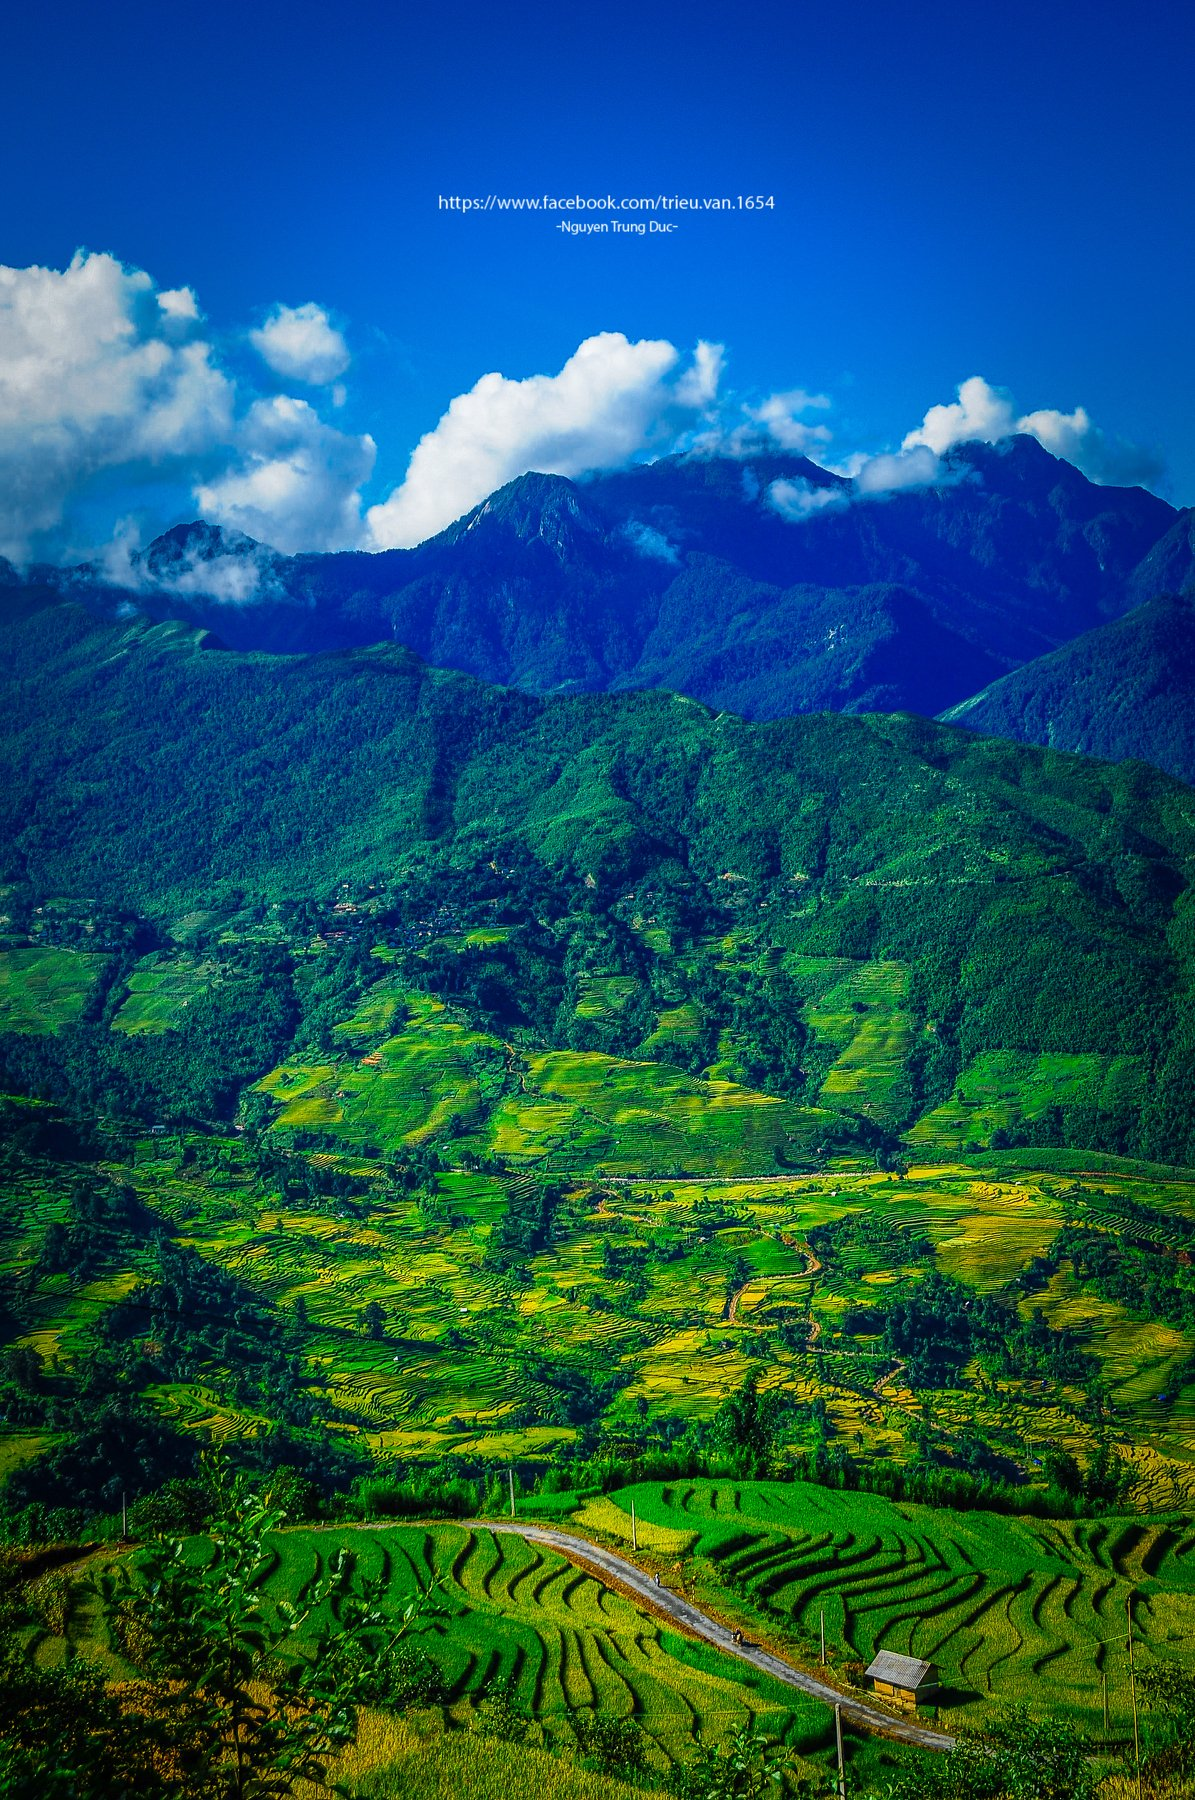 Blue, Clouds, Color, D300s, Field, House, Landscape, Mountains, Nature, Nikon, Northwest of Vietnam, Rice, Season, Sky, Small house, South east asia, Summer, Trungducphoto, Vietnam, Waves, Way, Yellow, Nguyen Trung Duc